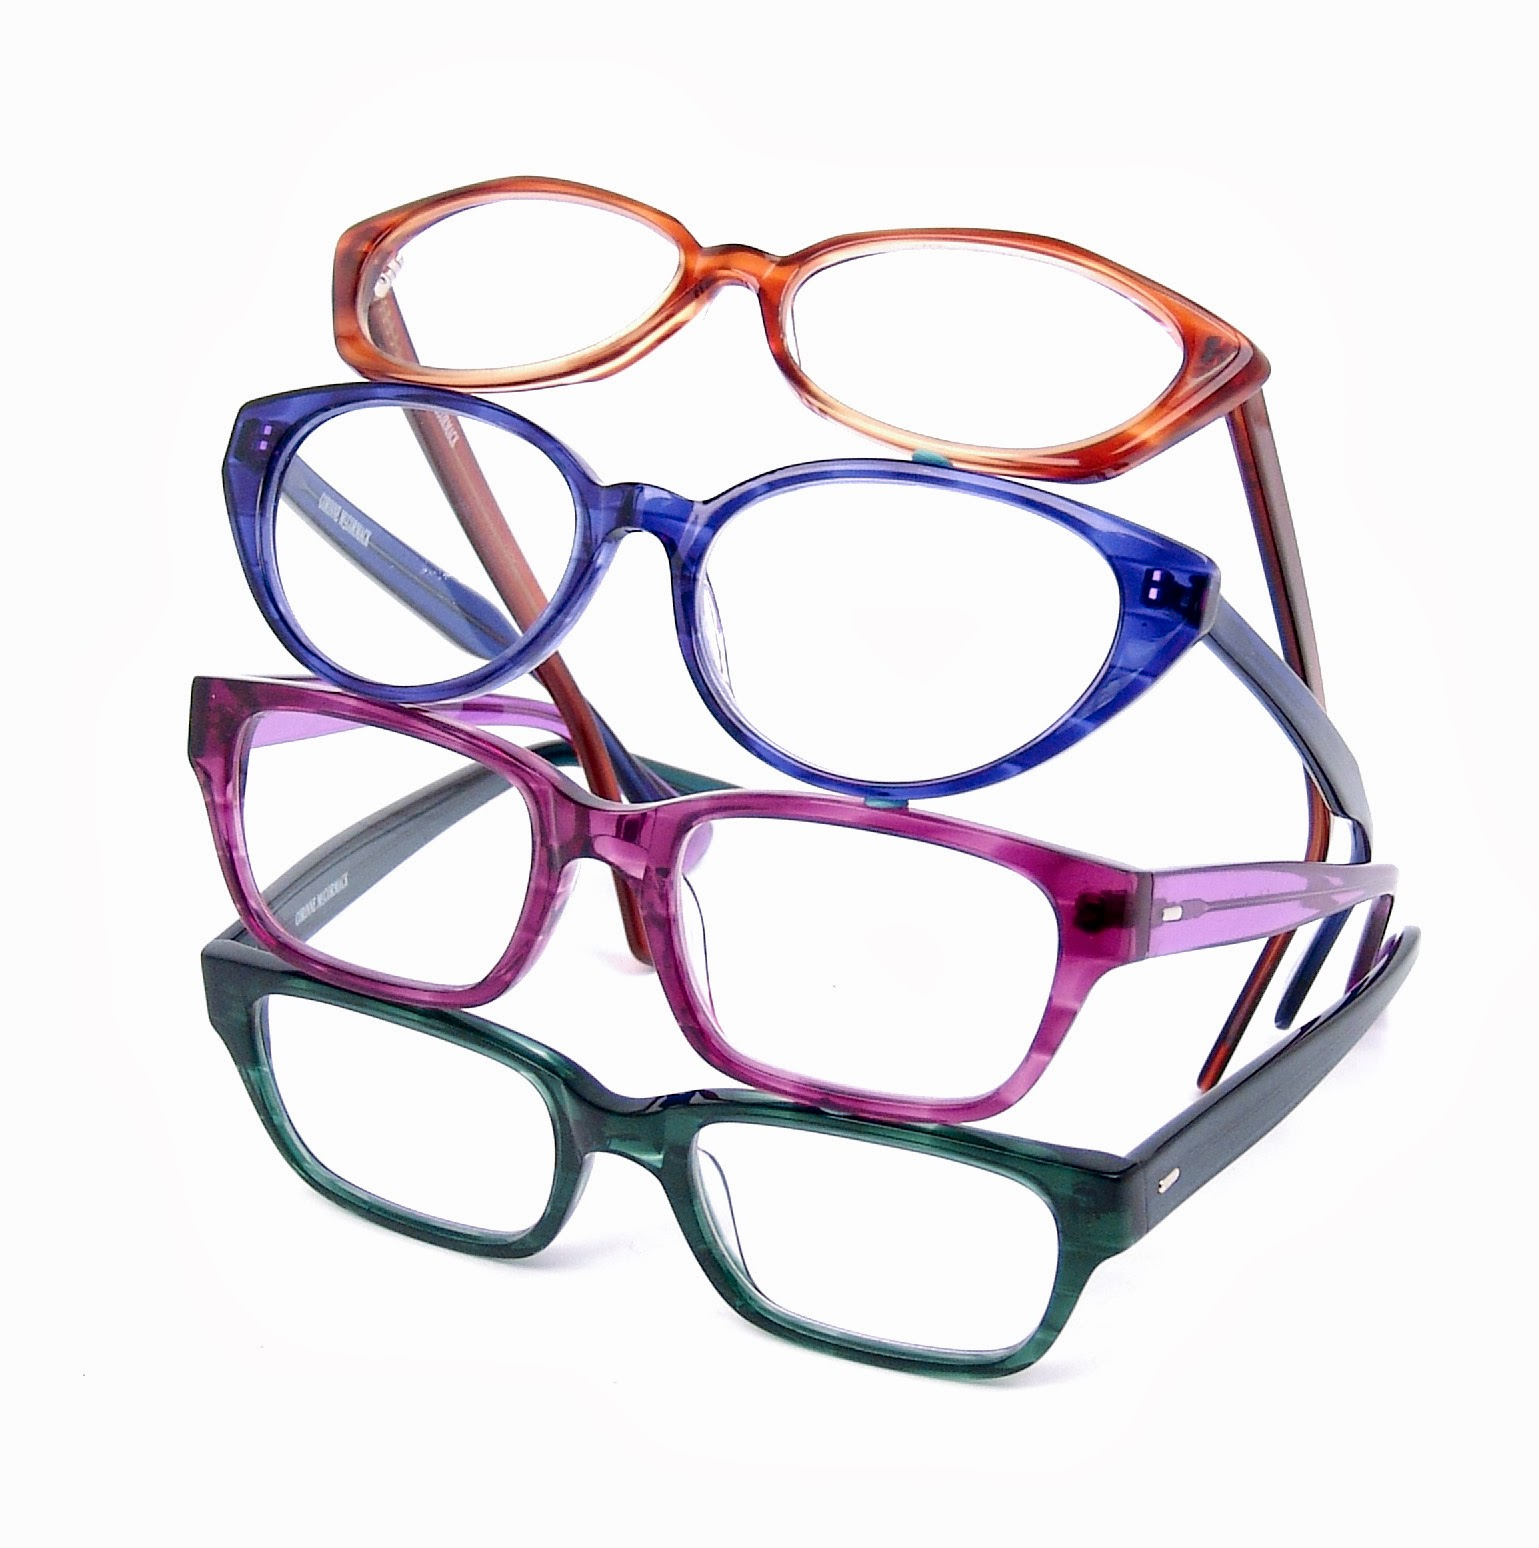 Flattering50: Smart, Stylish Reading Glasses For Women Over 50